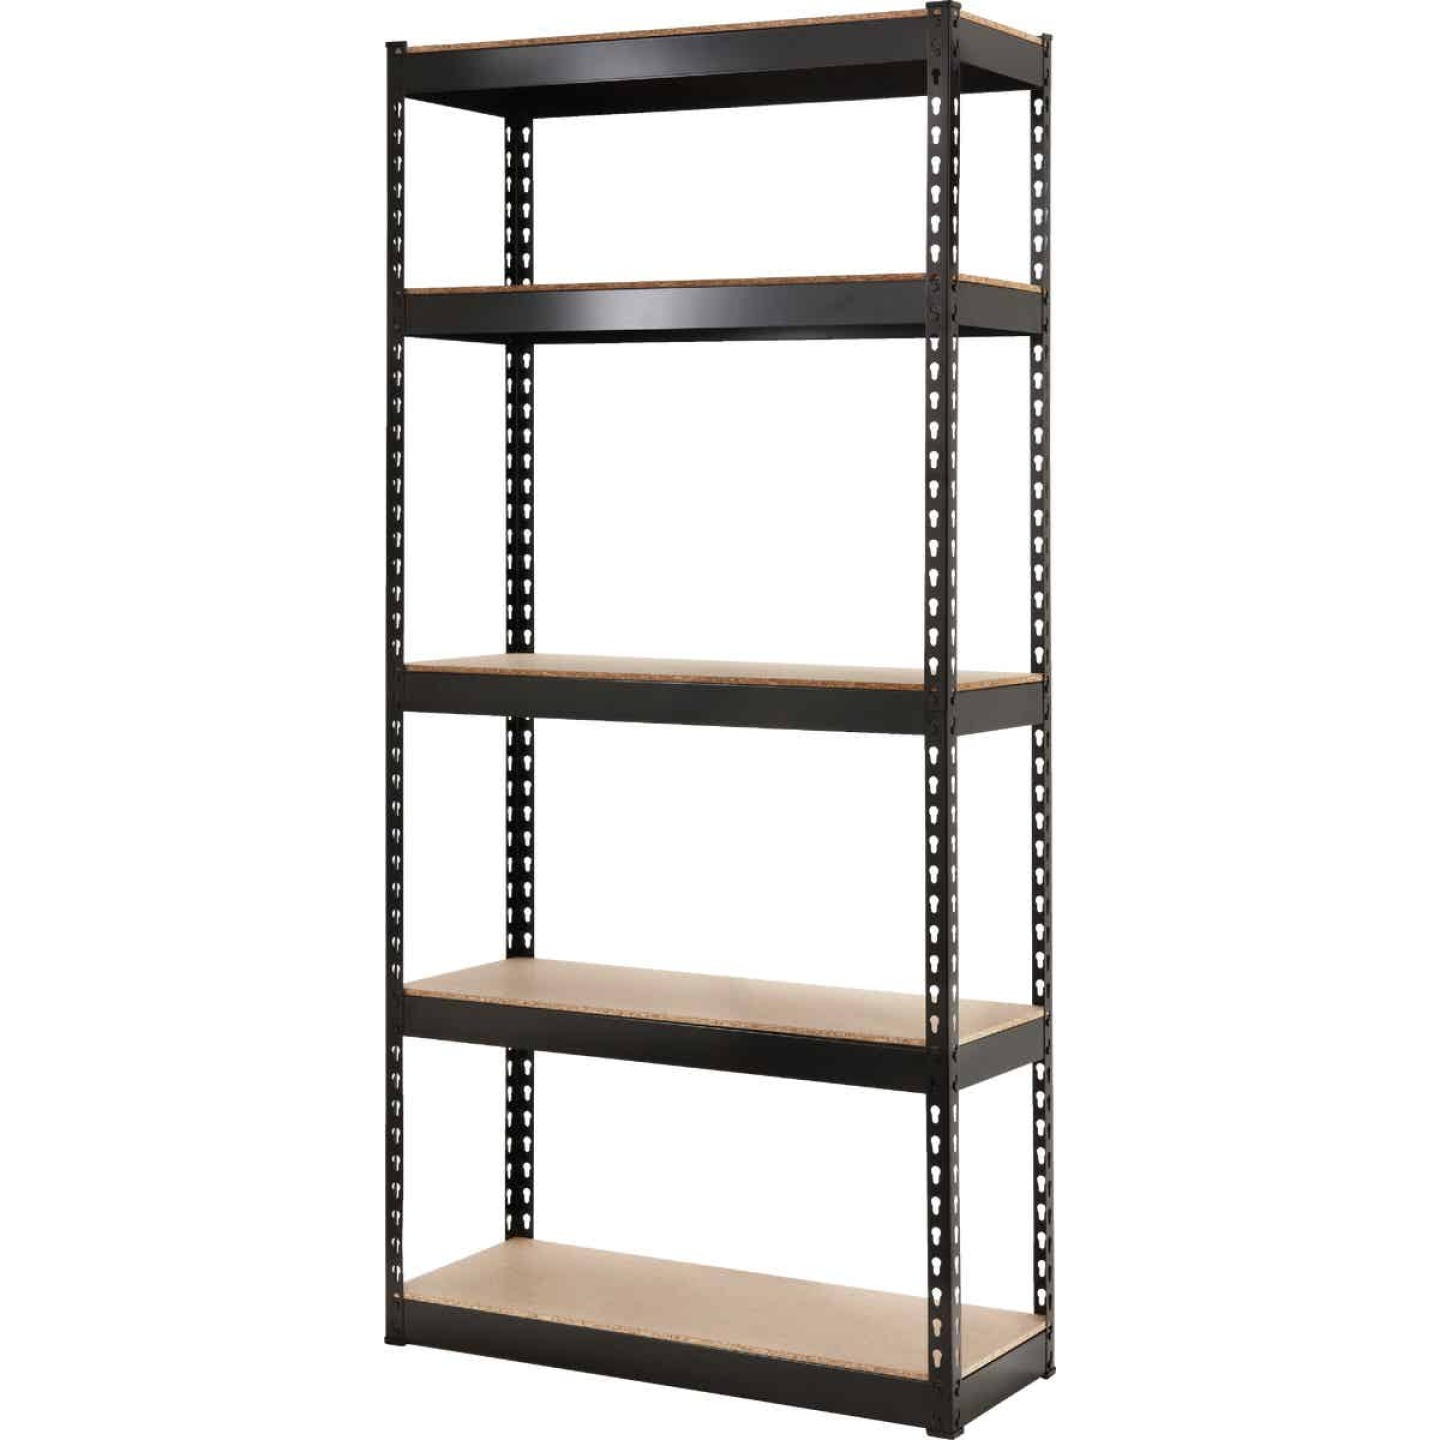 L-Beam 34 In. x 72 In. x 14 In. Black Steel 5-Tier Shelving Image 1